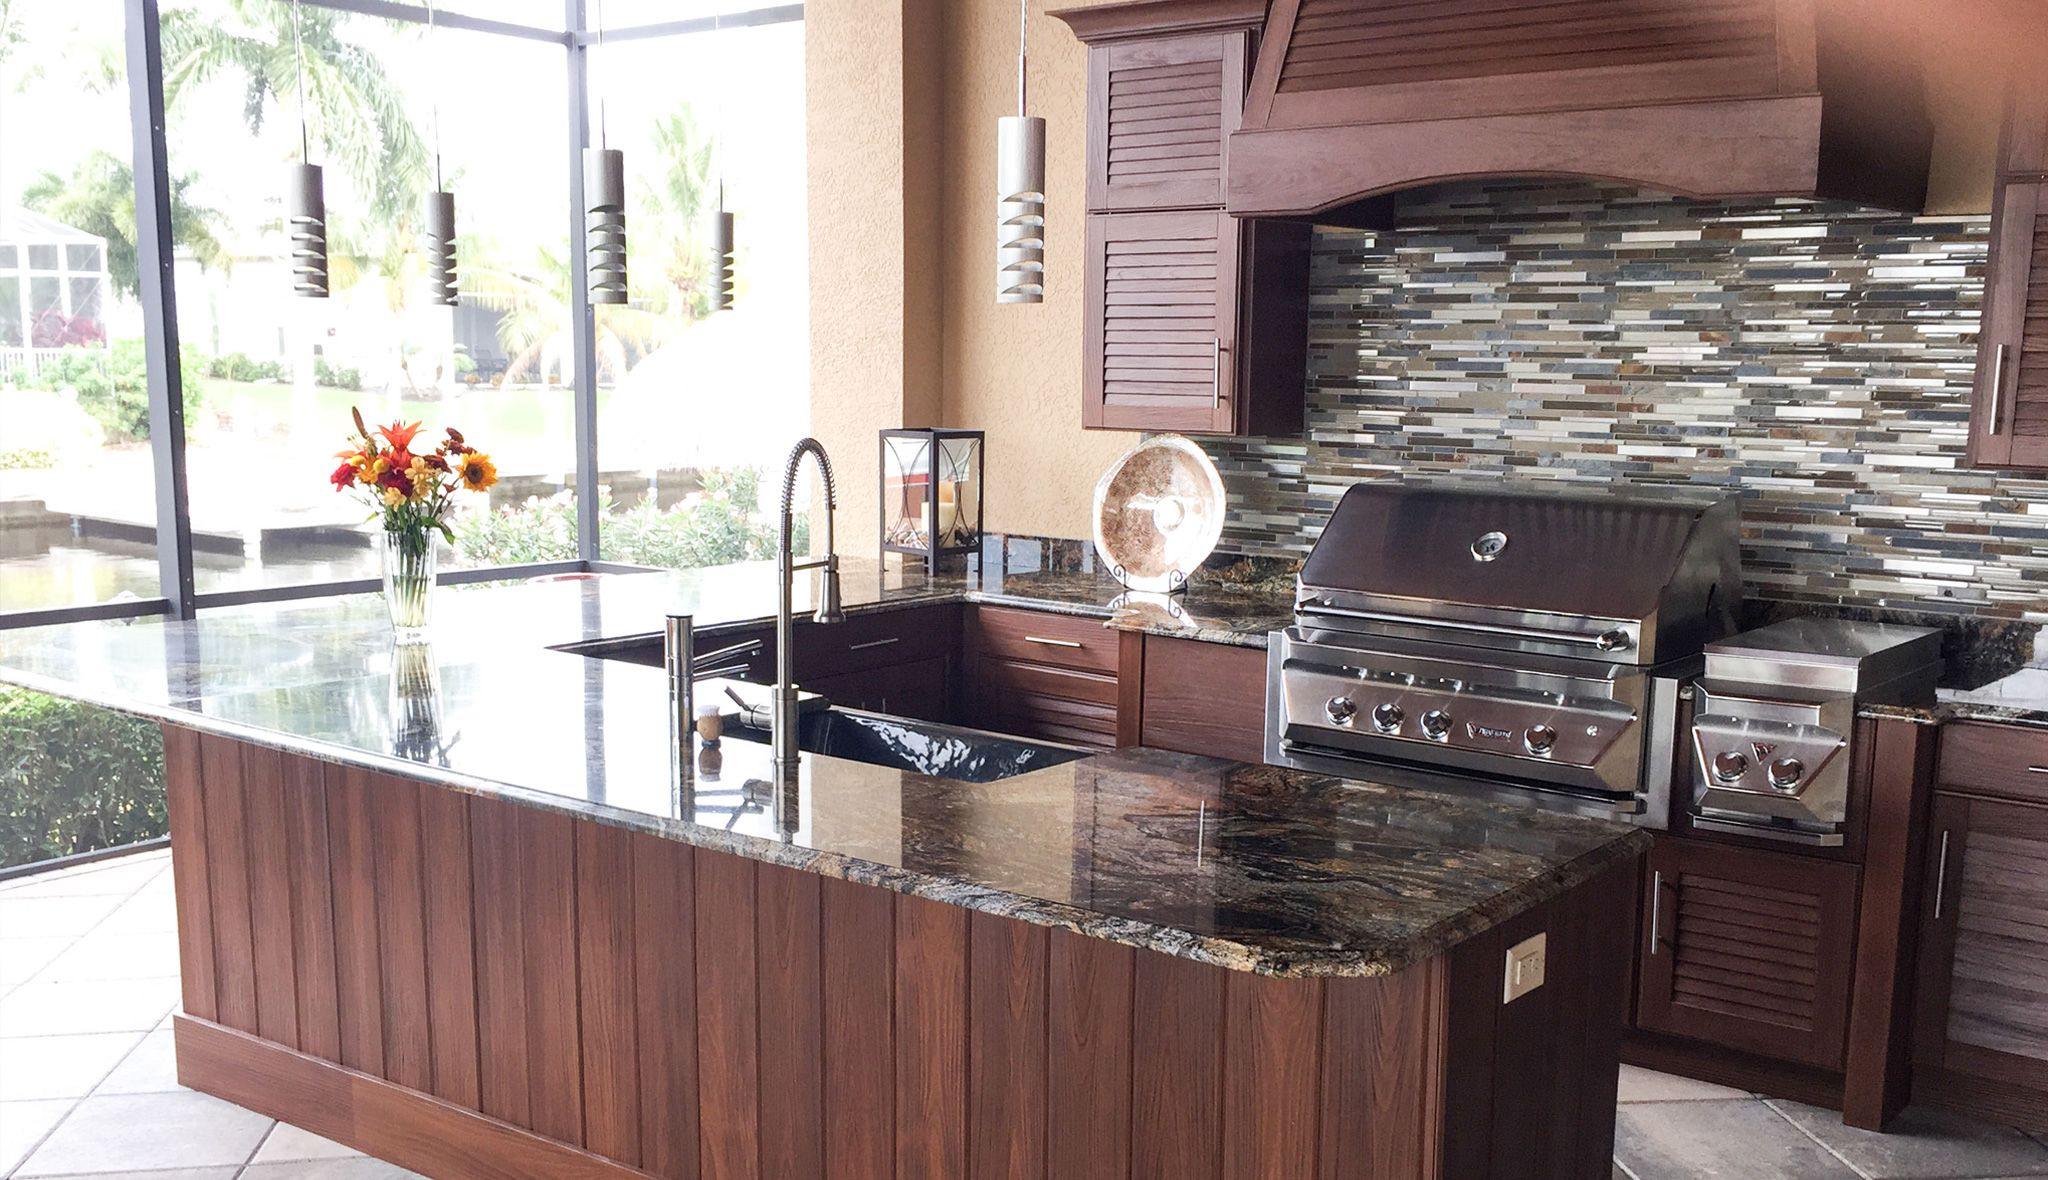 Check Out This NatureKast Outdoor Kitchen